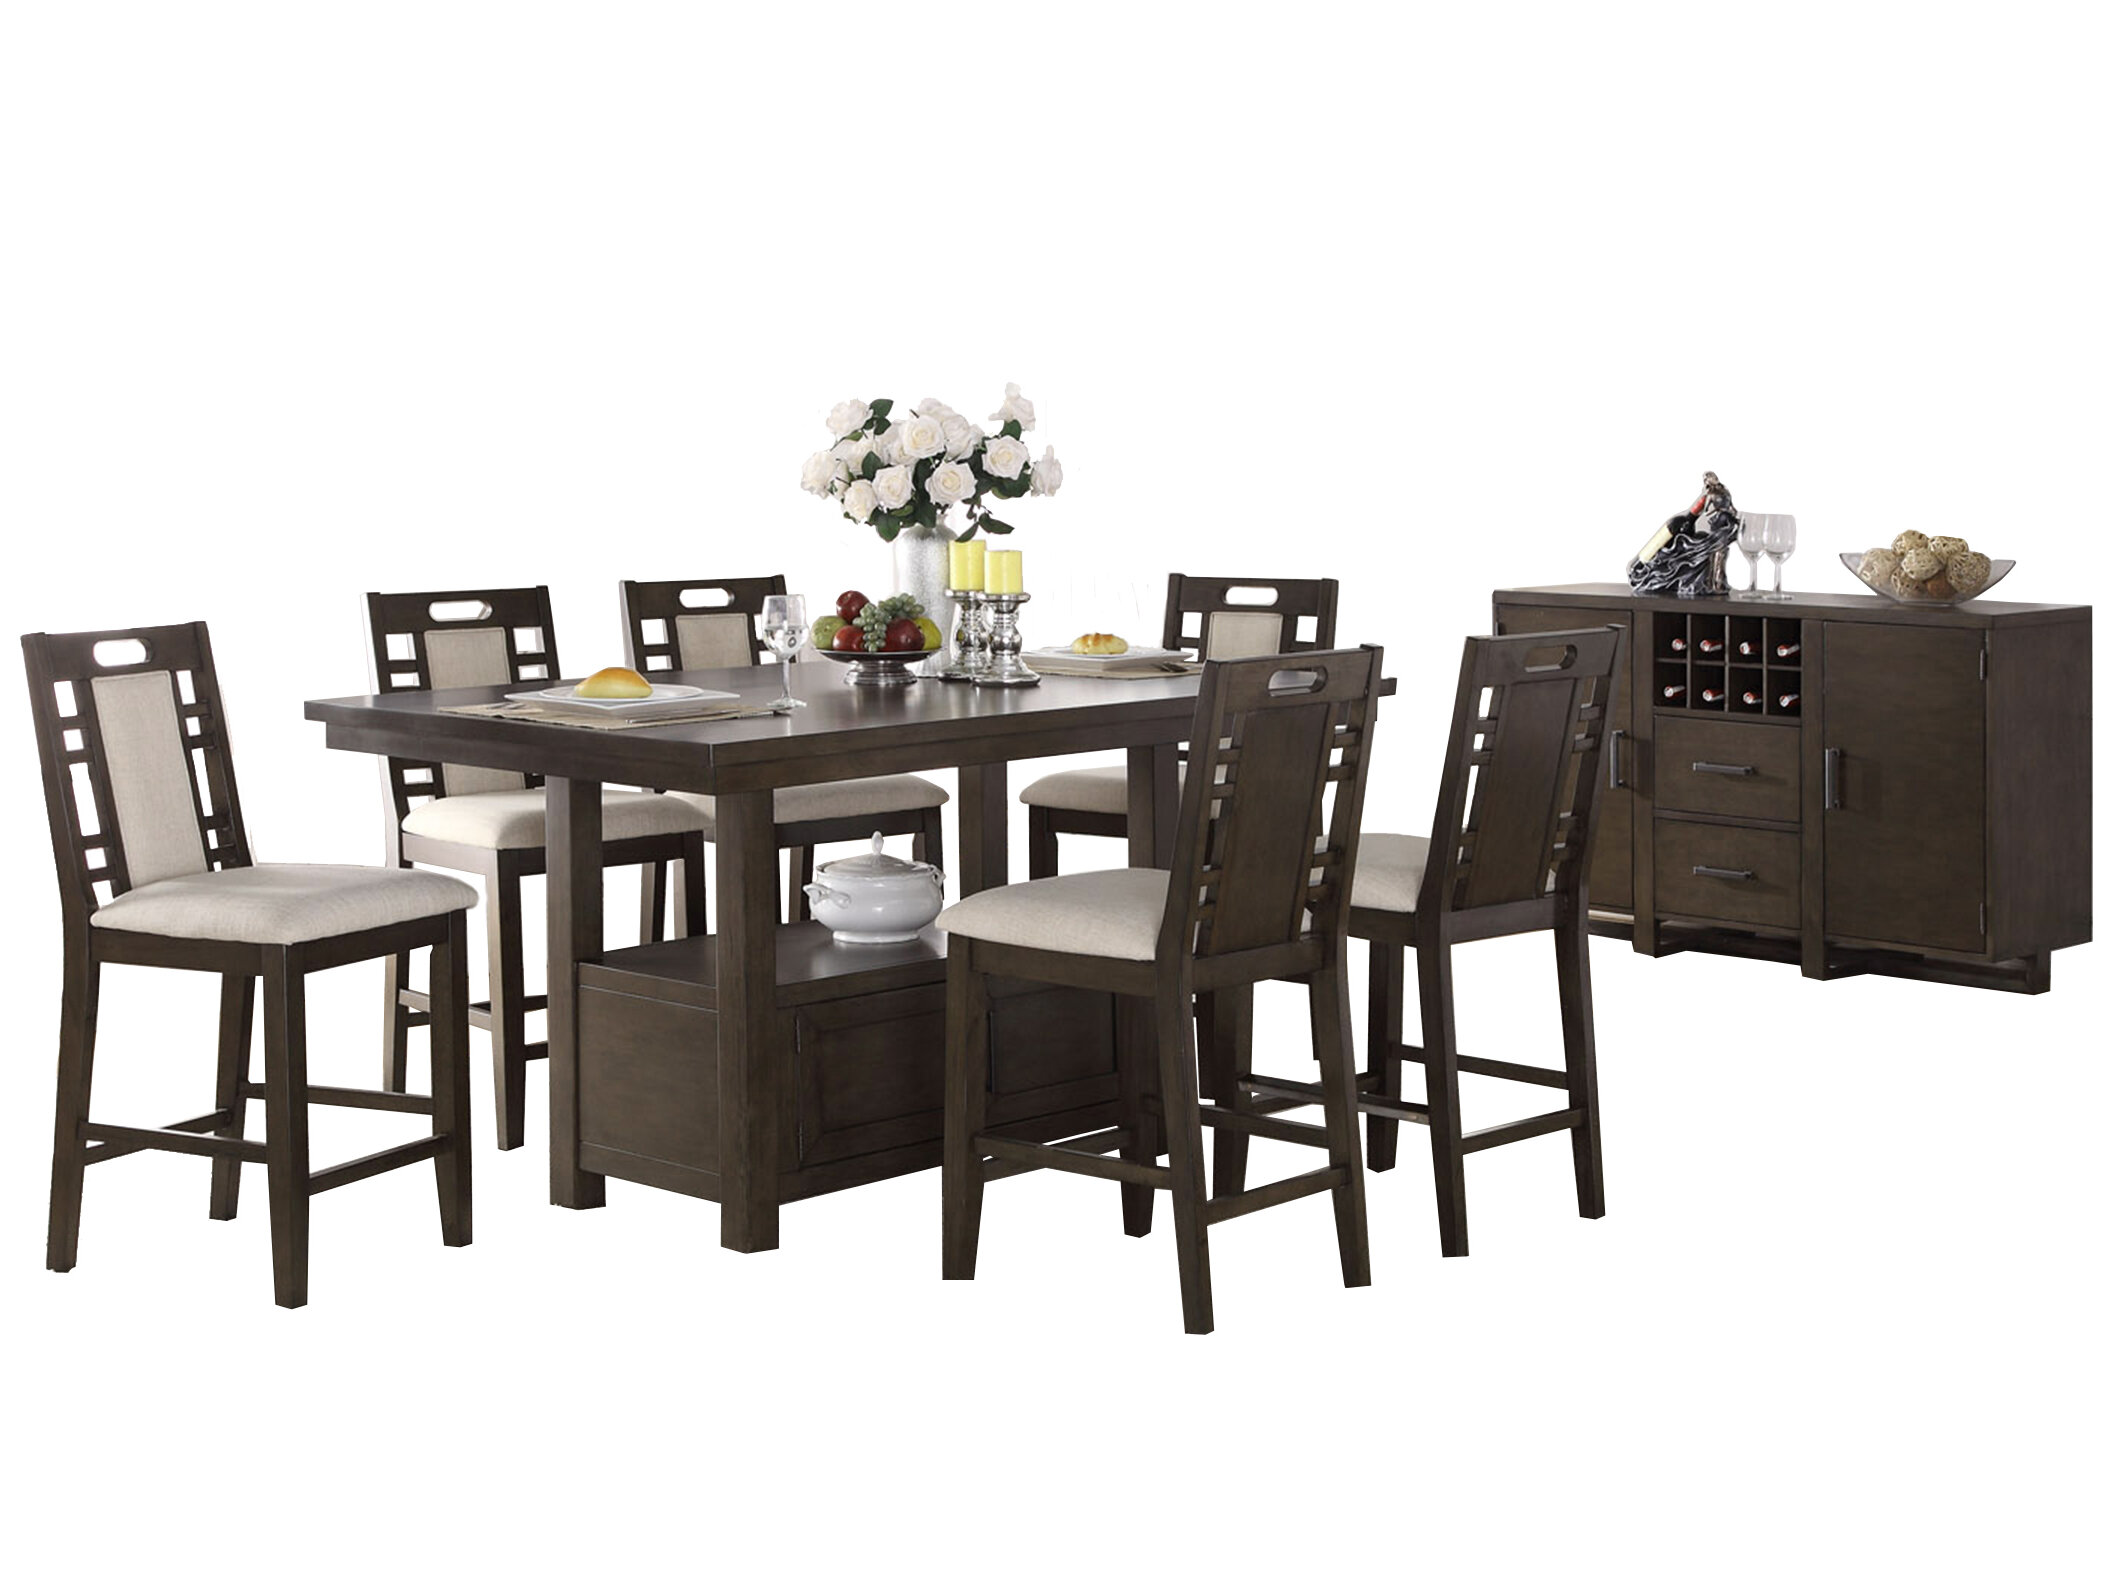 Genial Pylle Hill 8 Piece Counter Height Dining Set